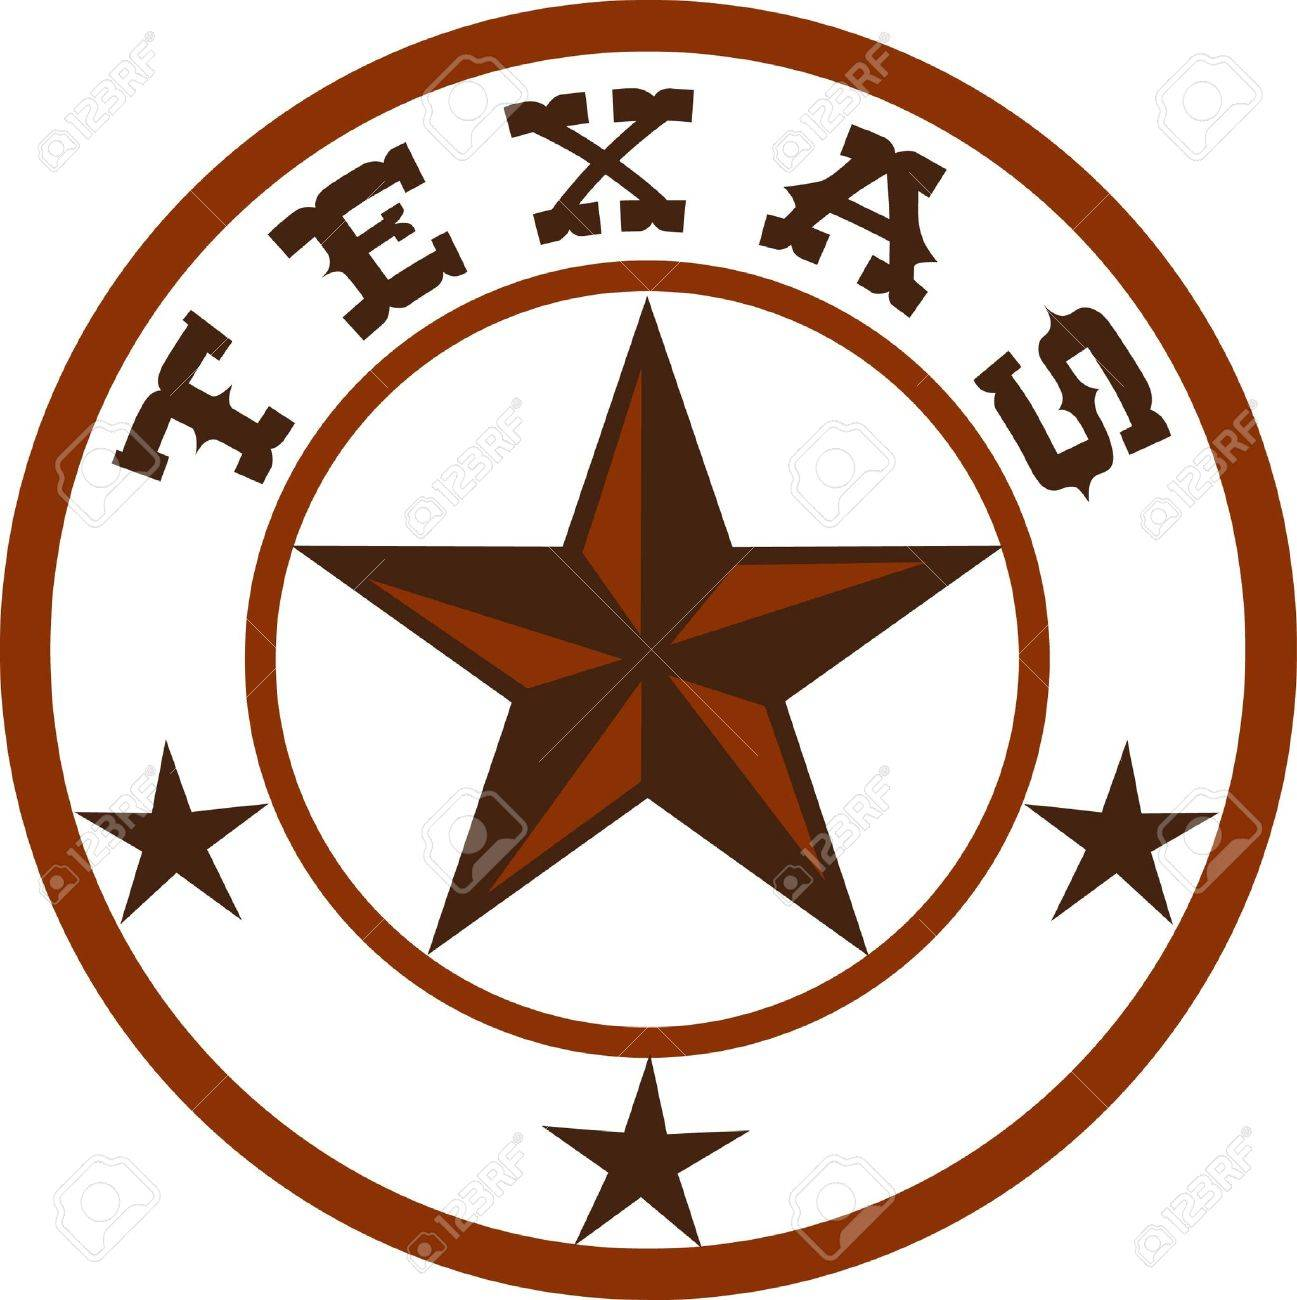 Put this great star on a western project. - 45348767